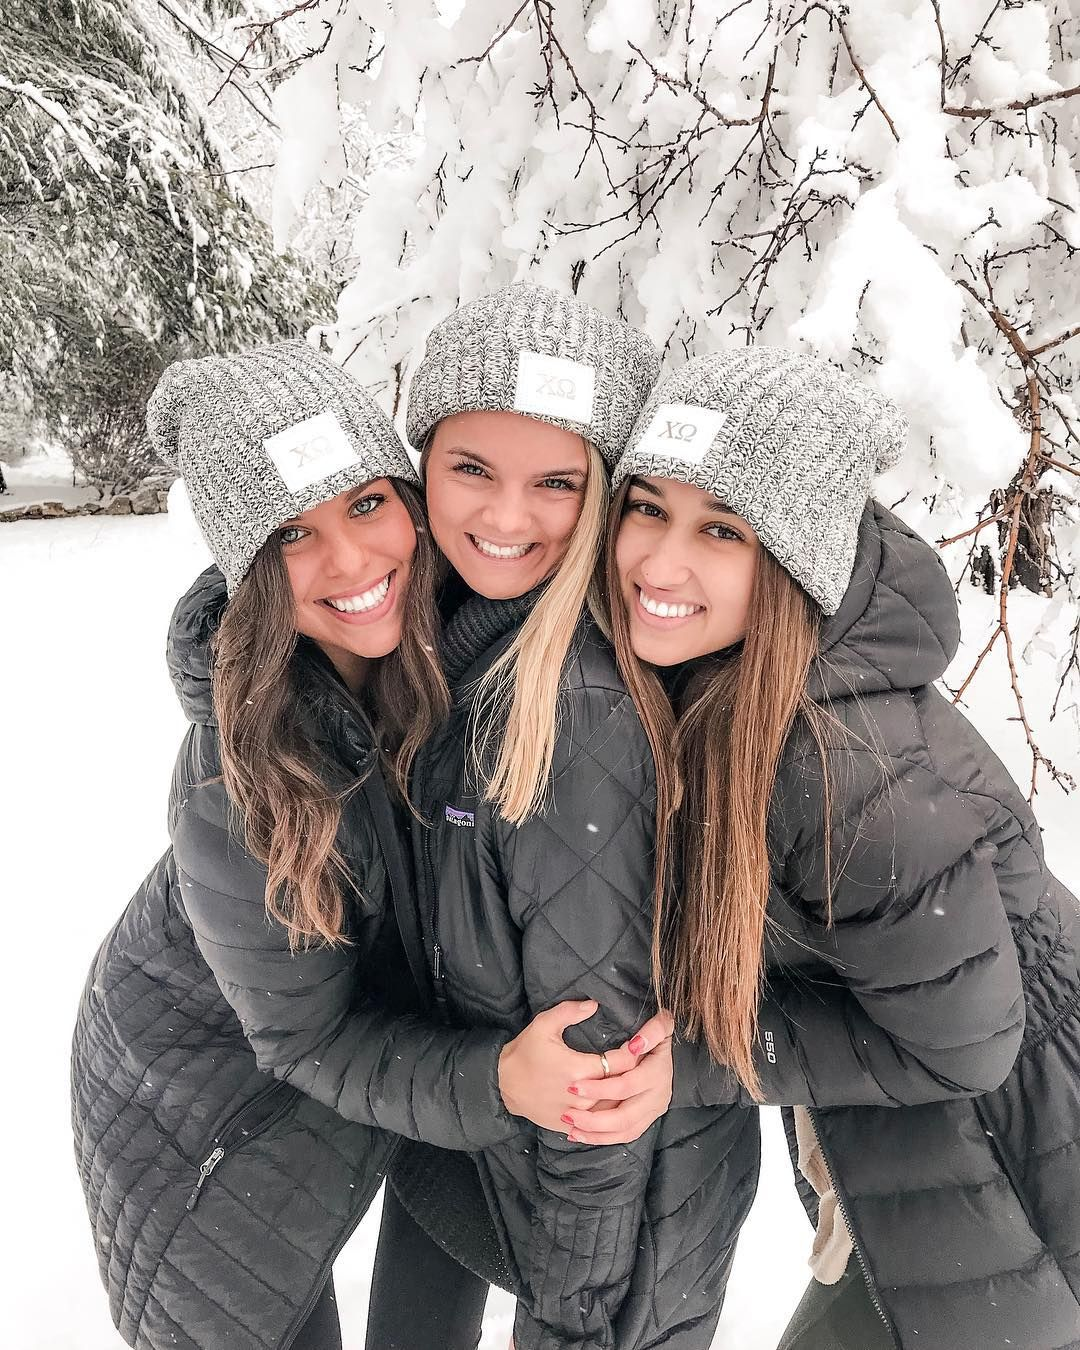 """Mizzou Chi Omega on Instagram: """"lookin back at this *snowy* wknd already ❄️☃️❄️ butttt it's a good week to have a good week, so knock 'em dead sisters!"""""""